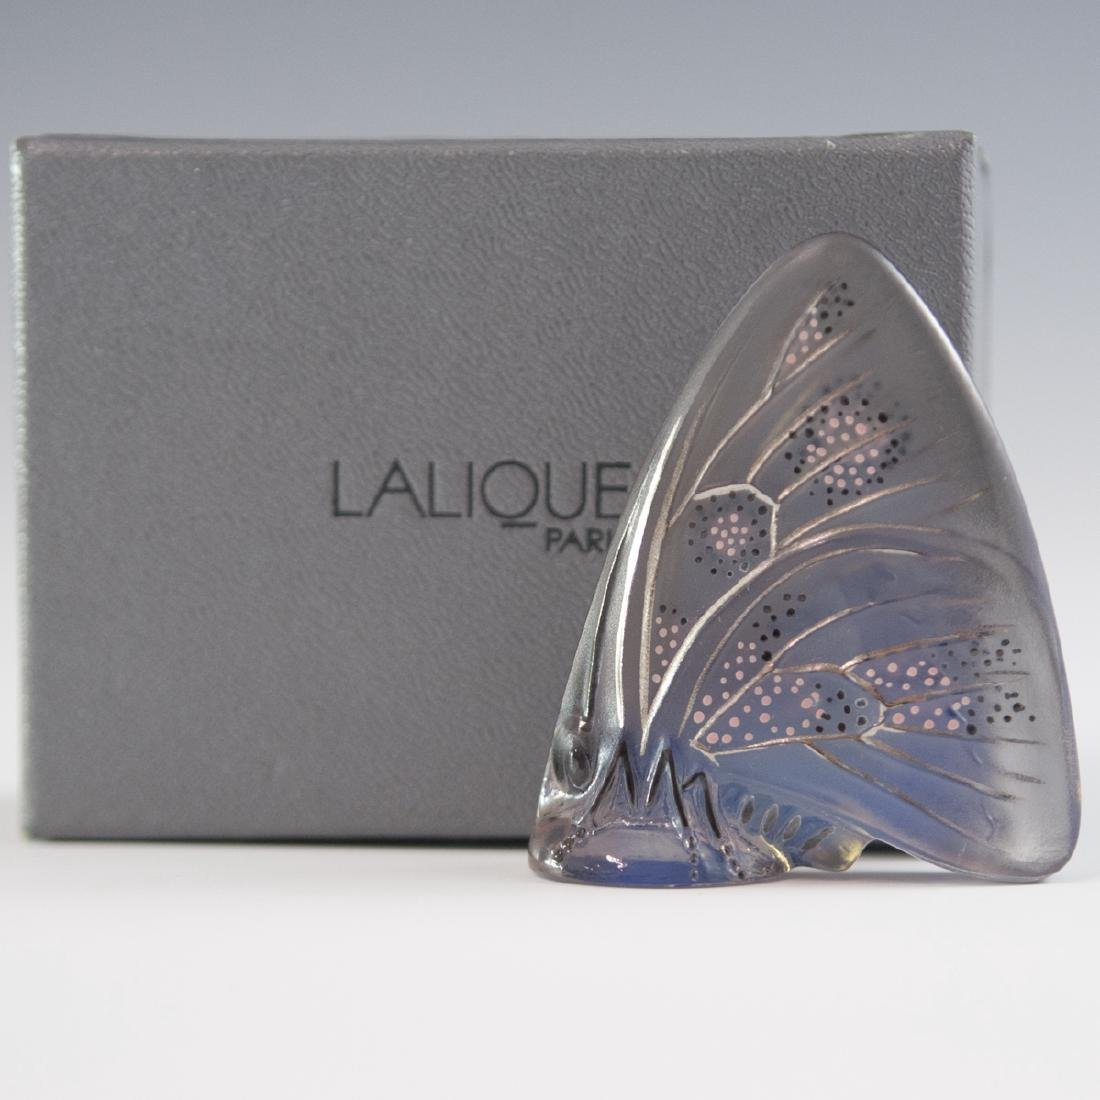 Lalique Frosted Crystal Enameled Butterfly